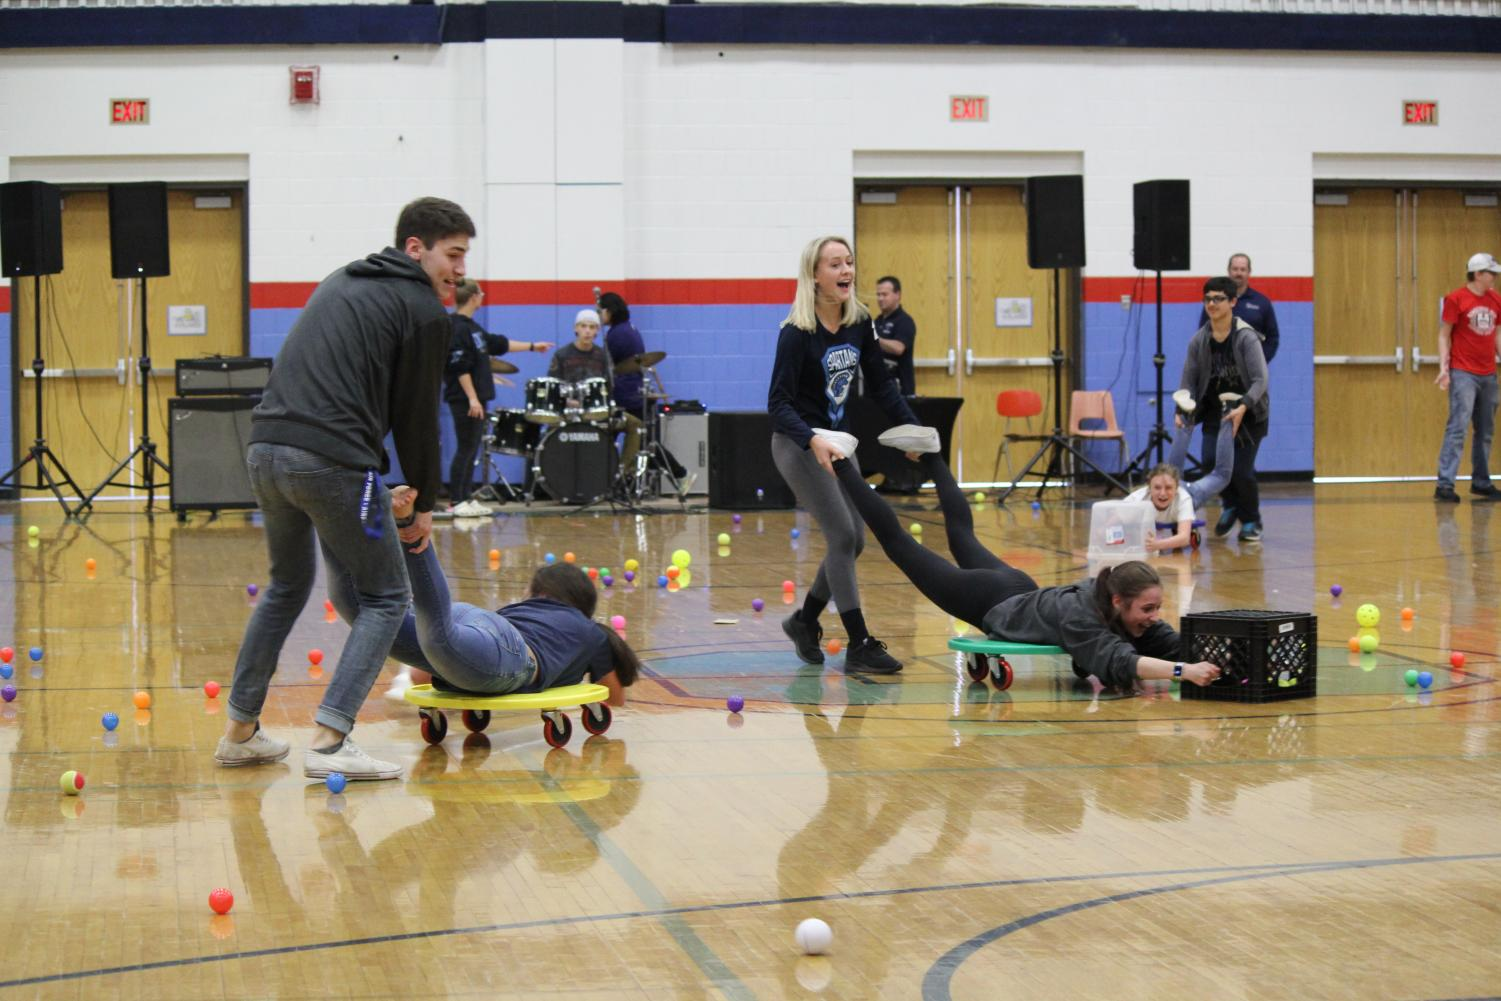 Seniors Maverick Peterson and Shannon McCoshen compete against Satori Rekstad and Katrina Jones in the SHS gym to gather balls during a game of Hungry Hungry Hippos on May 3.